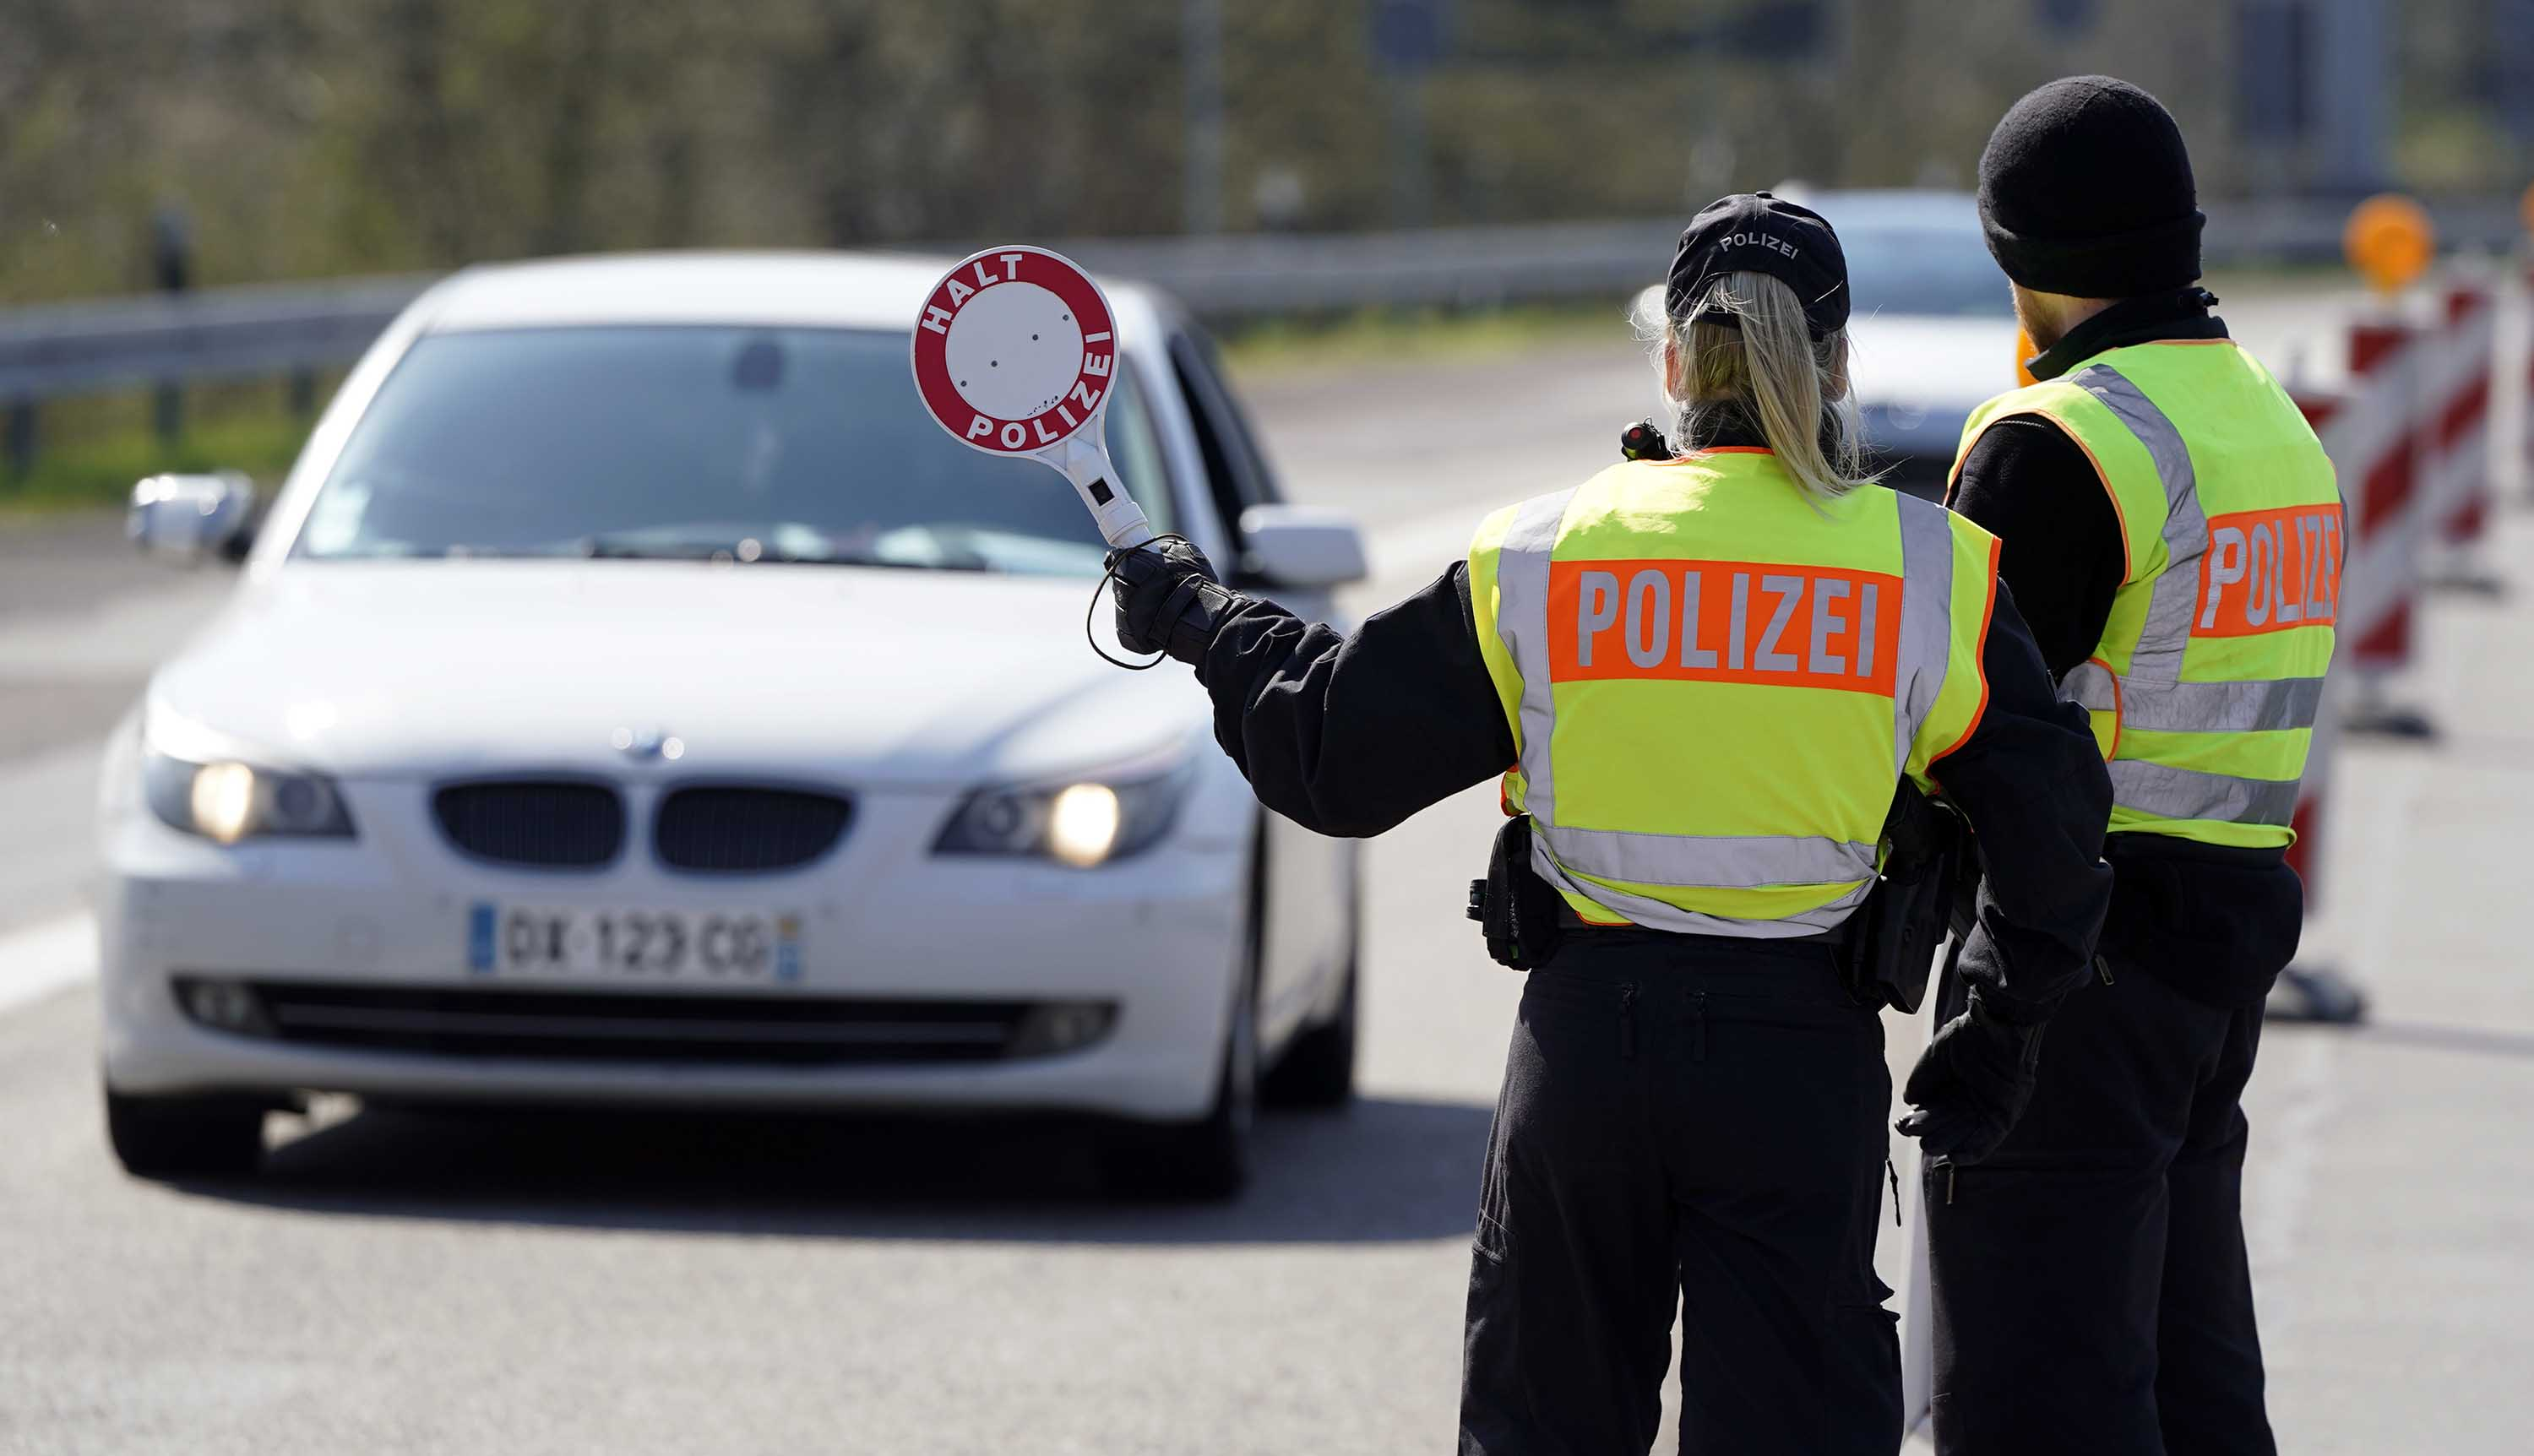 German Federal police officers control vehicles at the border to France in Saarbruecken, Germany, on March 26.